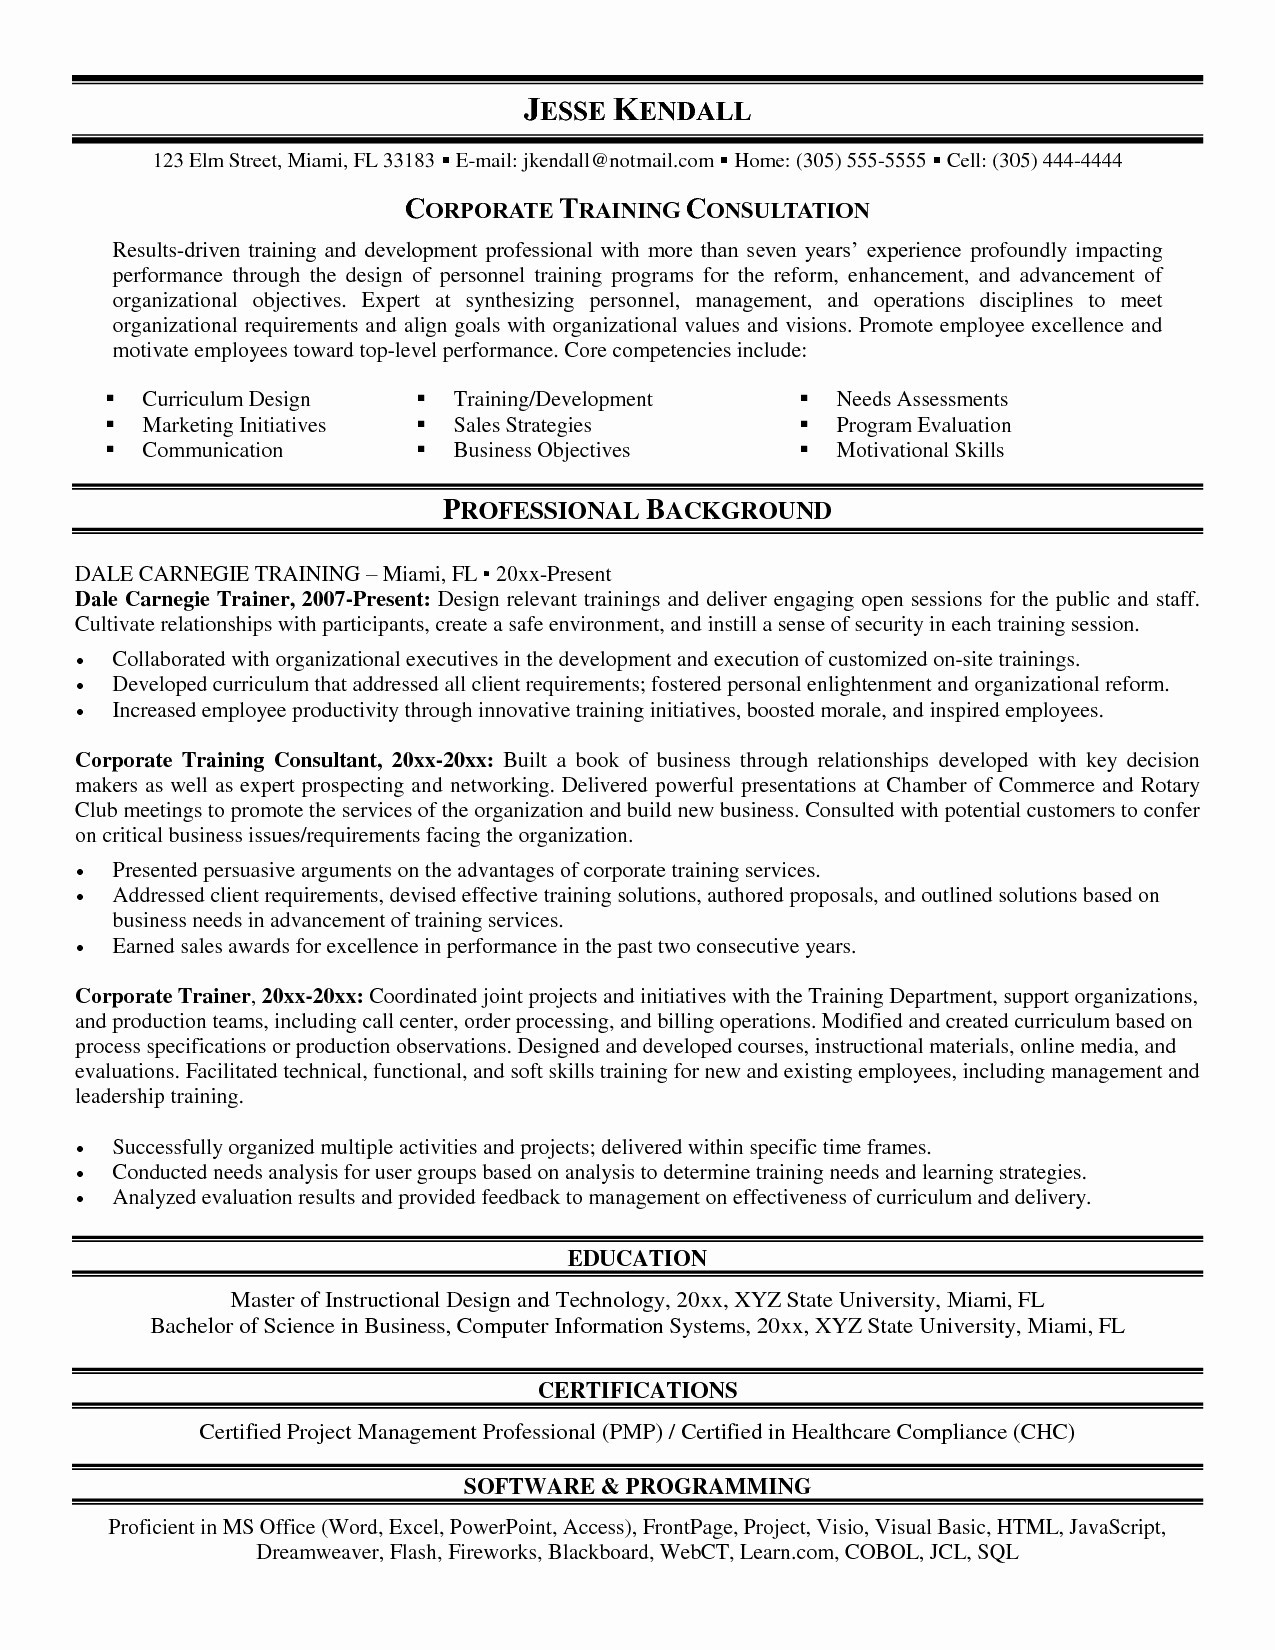 Customer Support Resume - Sample Resume Customer Service Best Unique Examples Resumes